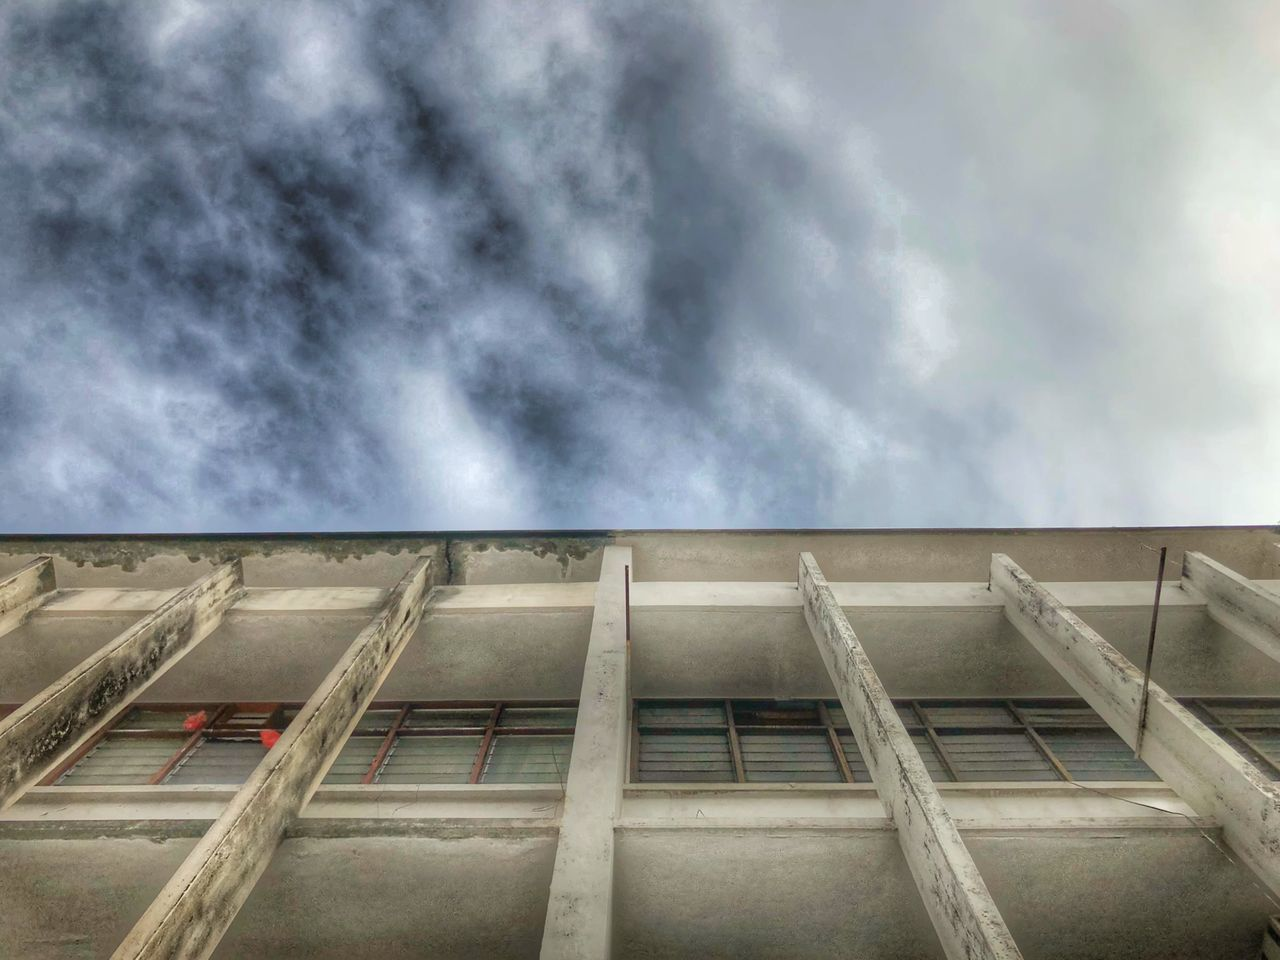 cloud - sky, sky, architecture, building exterior, low angle view, built structure, nature, no people, day, outdoors, industry, building, city, roof, overcast, wet, environment, window, residential district